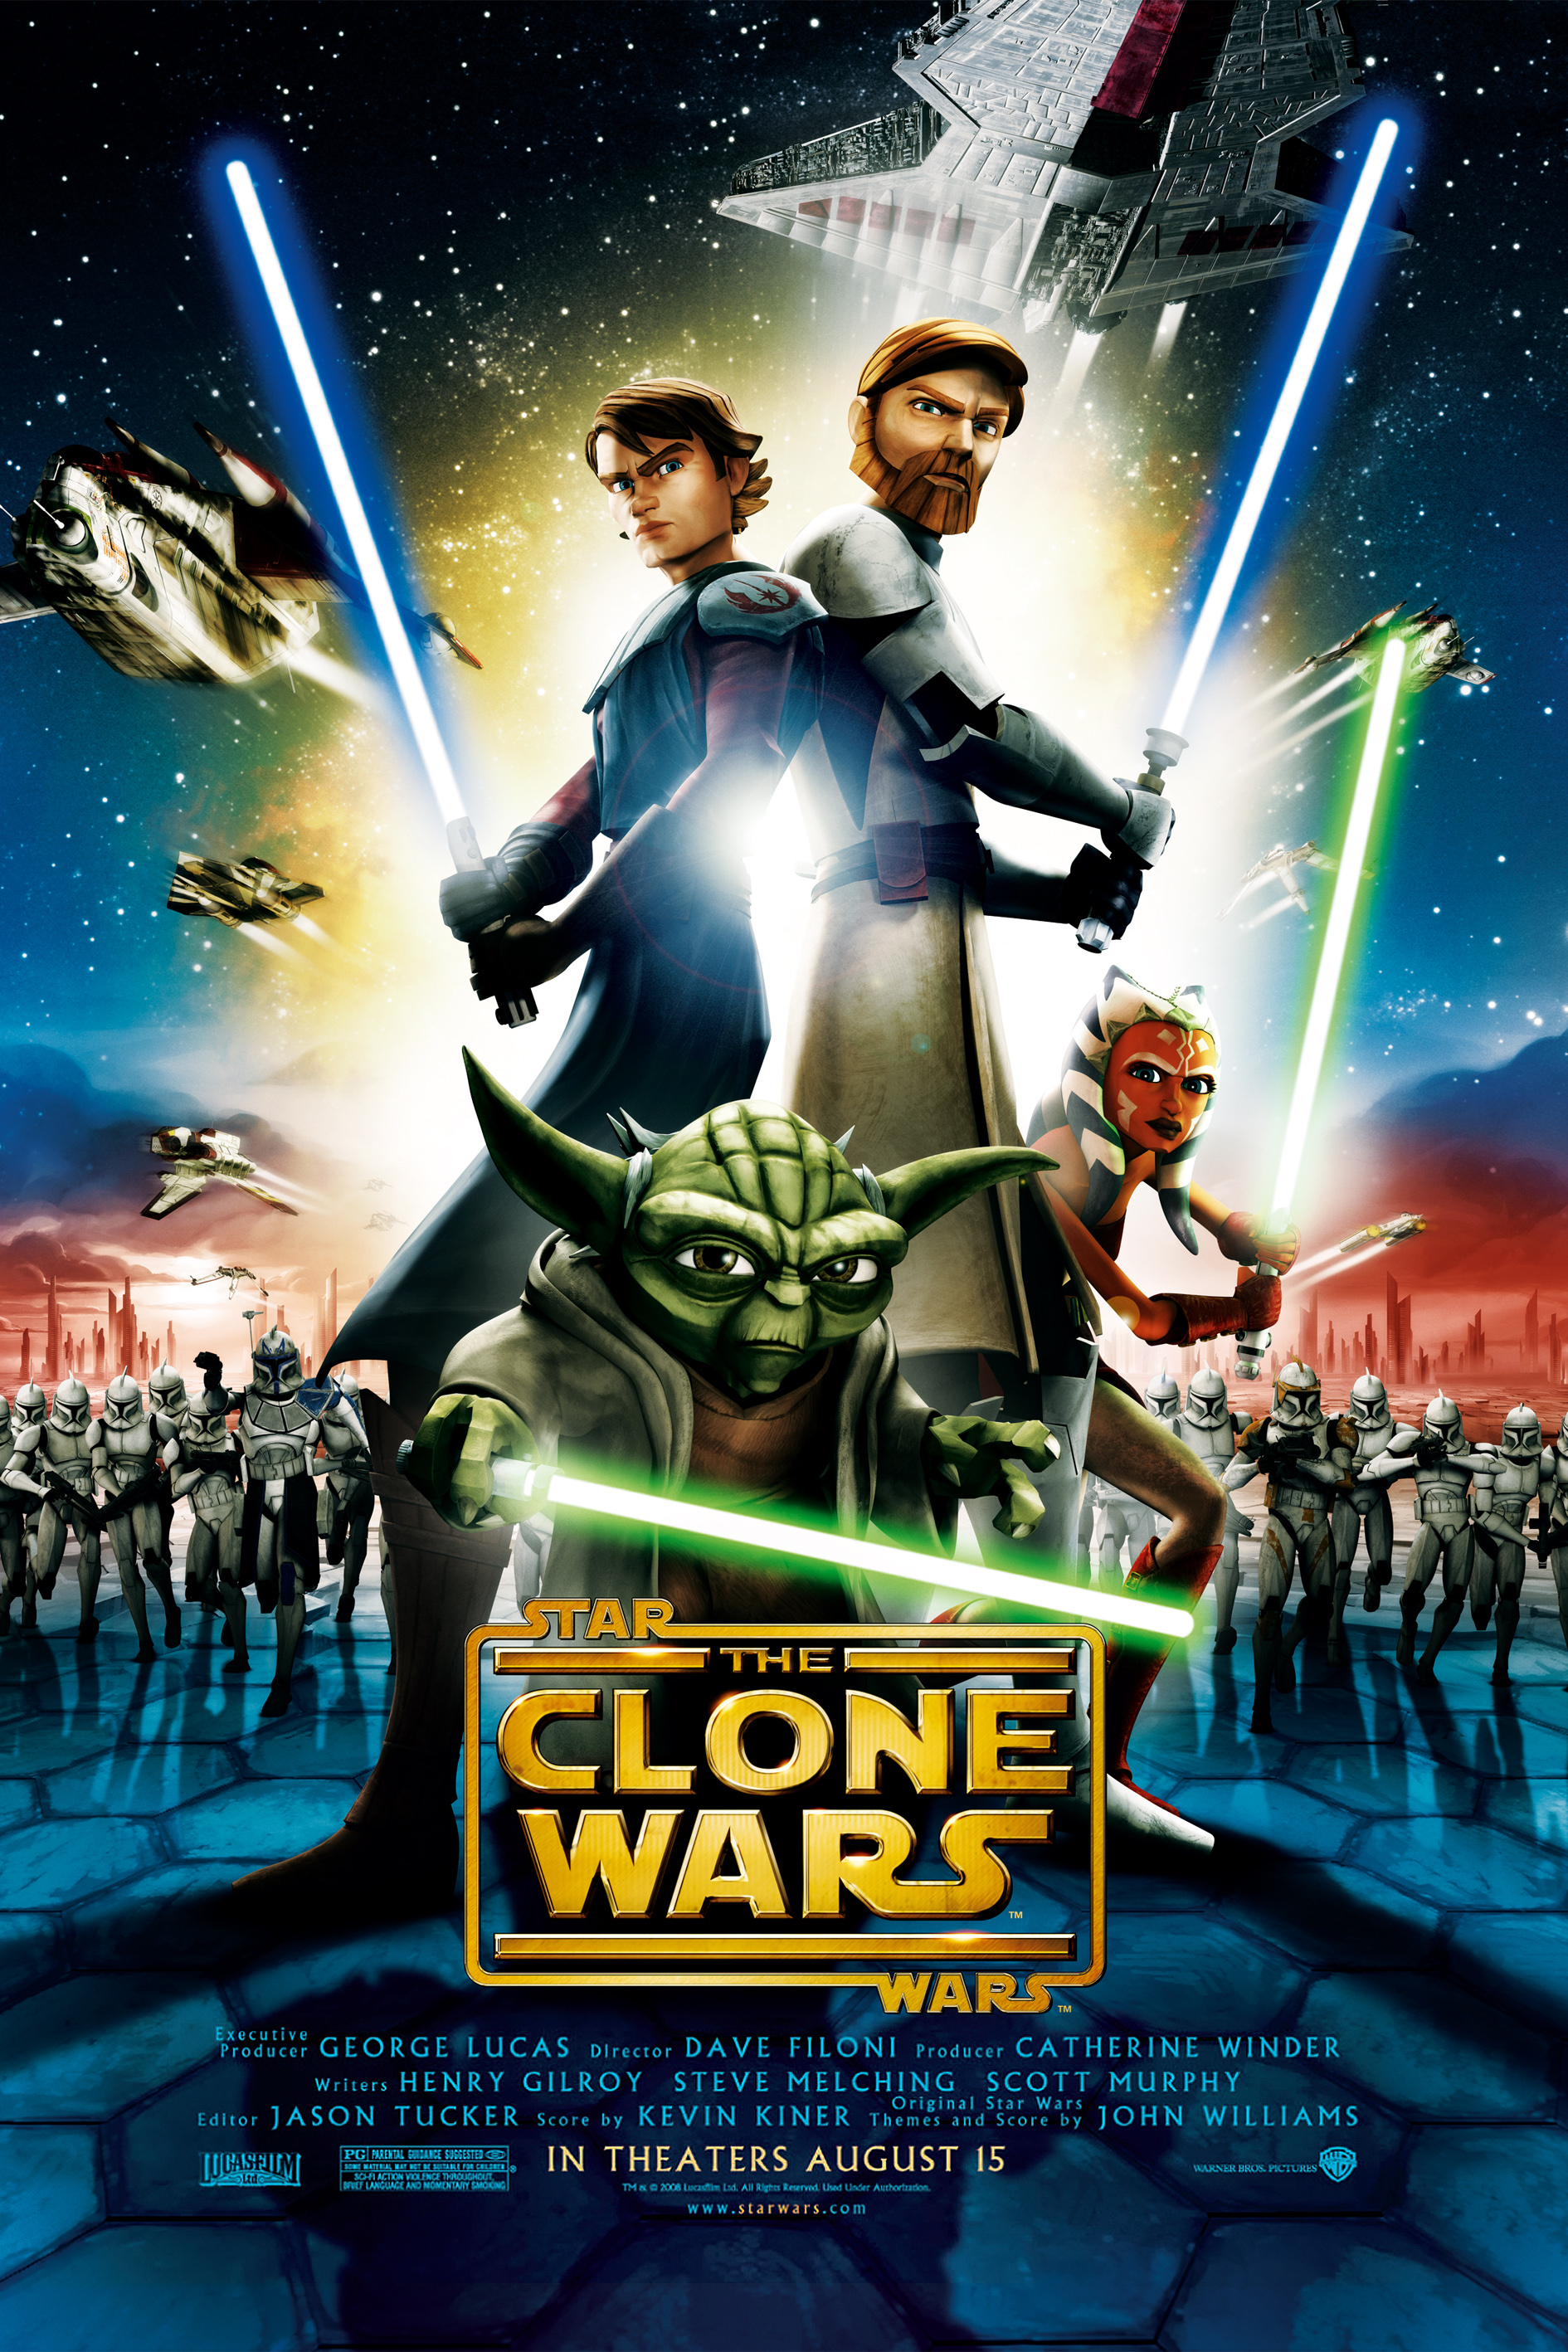 https://vignette.wikia.nocookie.net/starwars/images/f/ff/The_Clone_Wars_film_poster.jpg/revision/latest?cb=20090916003358